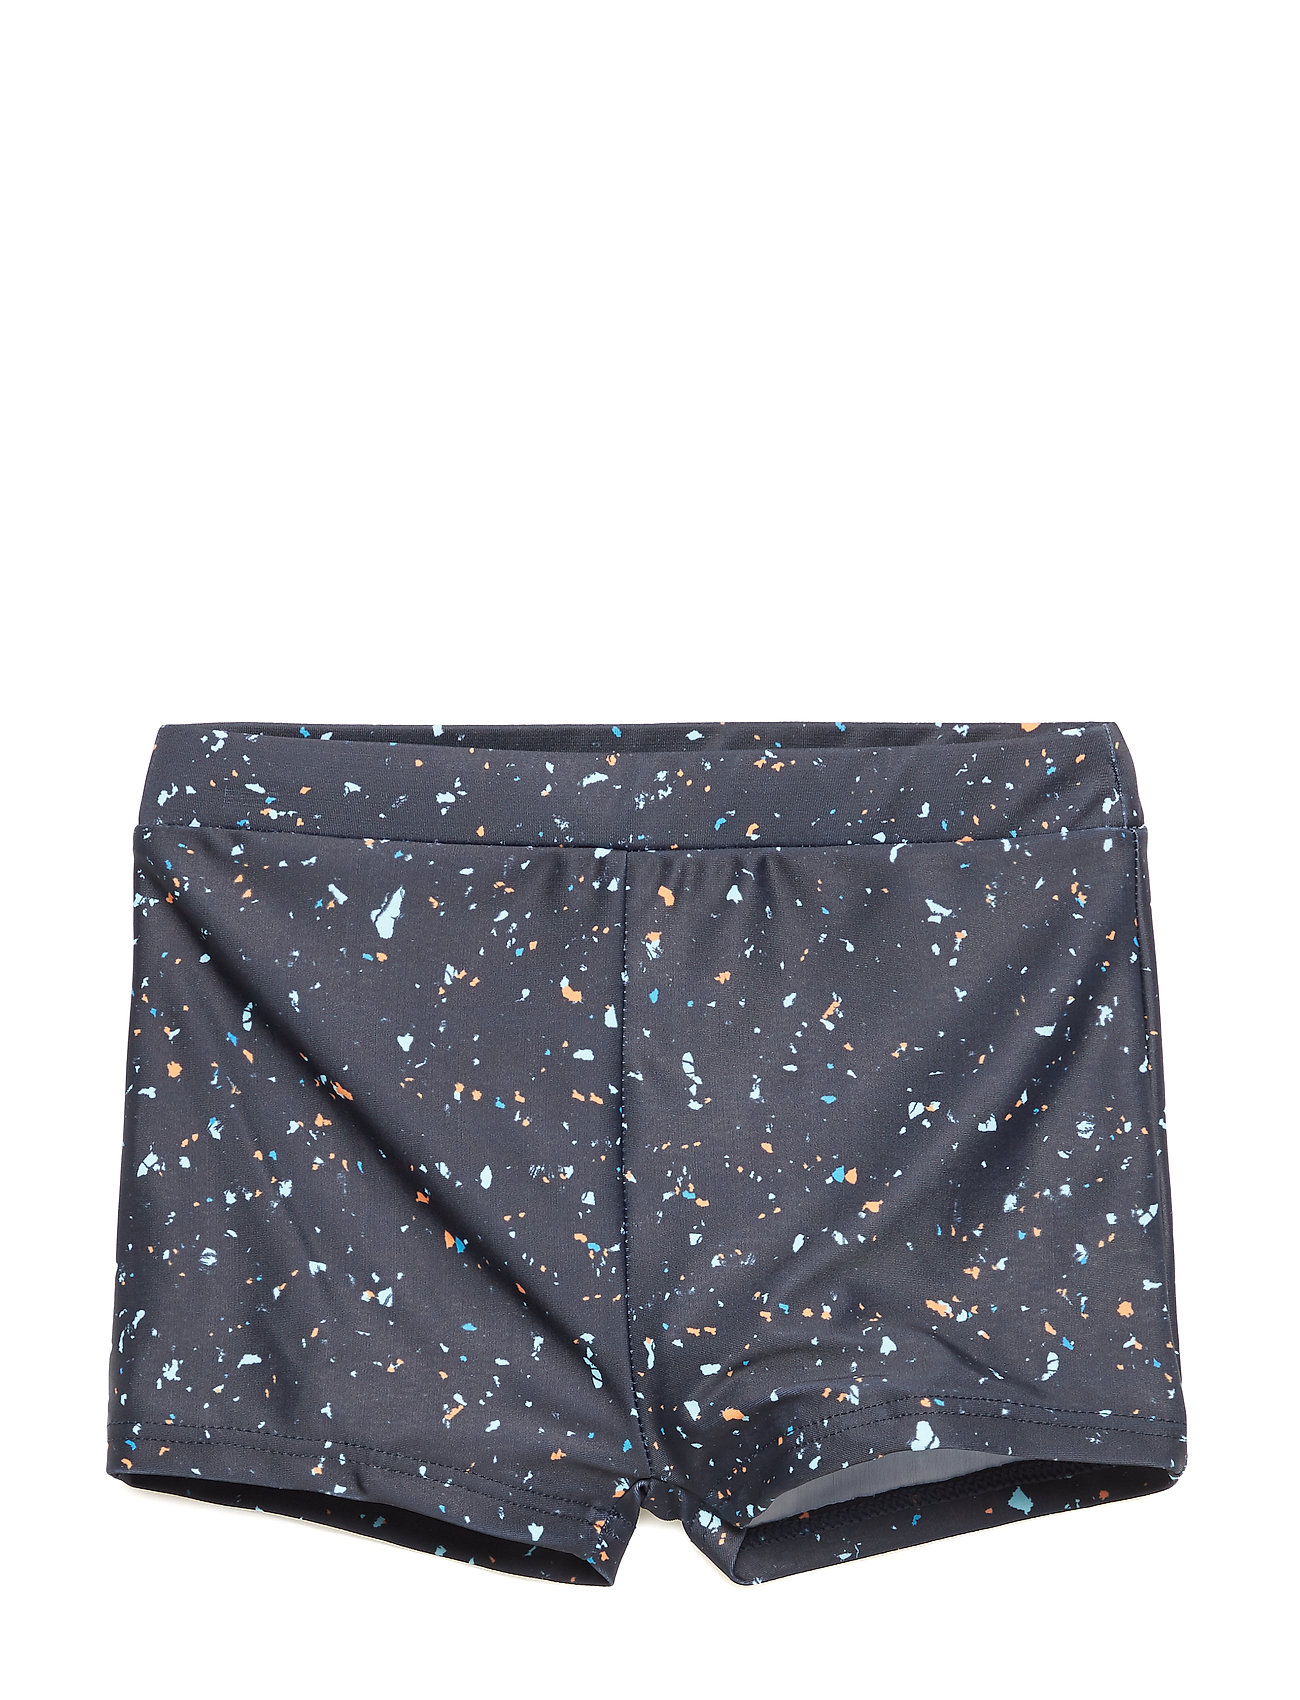 Soft Gallery Don Swim Trunk - INDIA INK, AOP FLAKES MIX